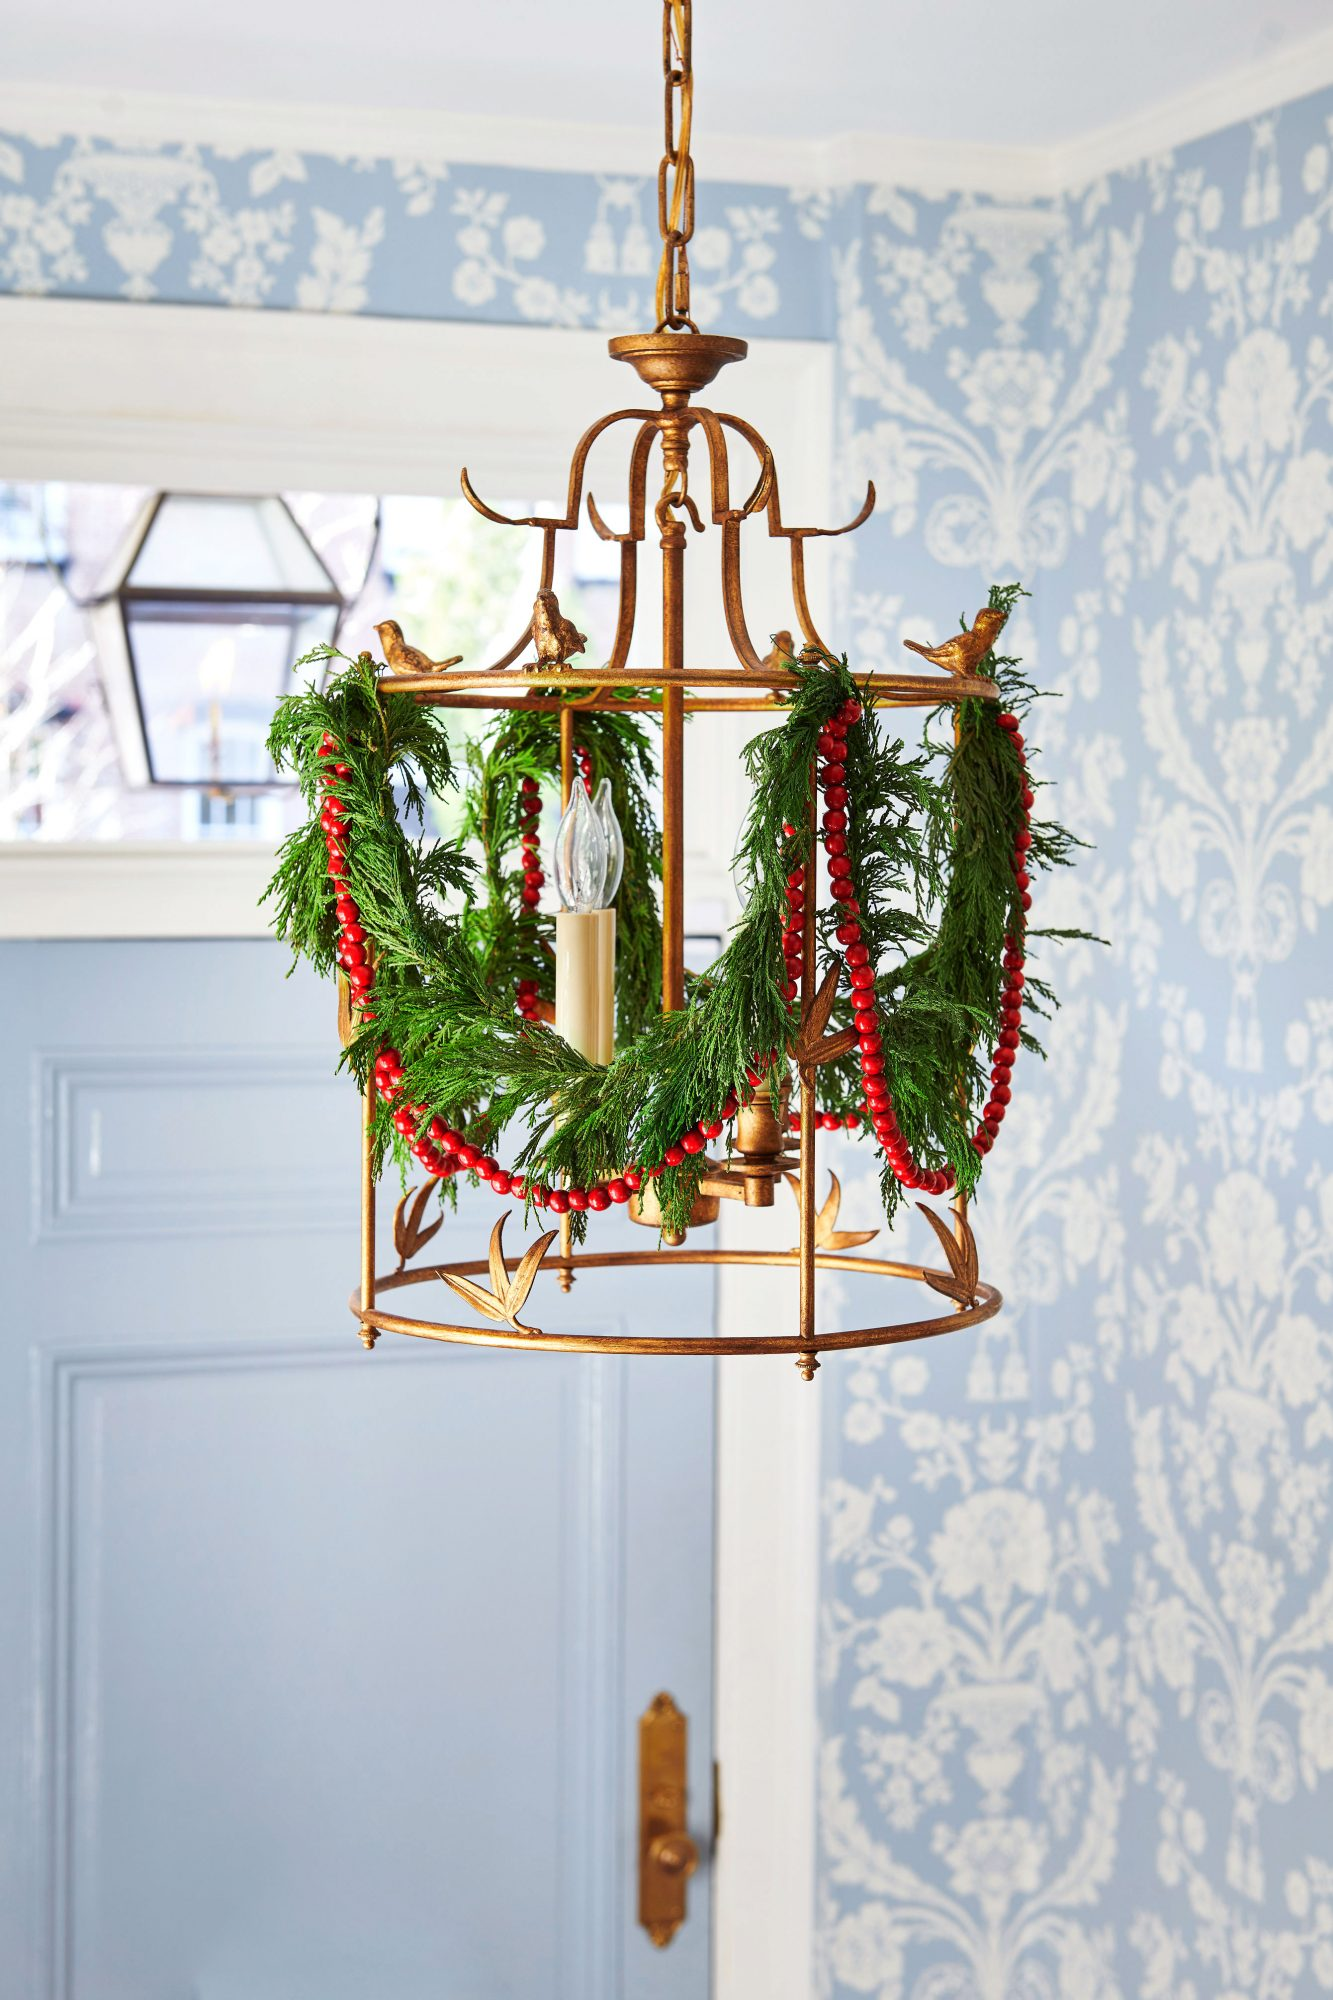 Foyer light fixture draped in greenery and cranberries